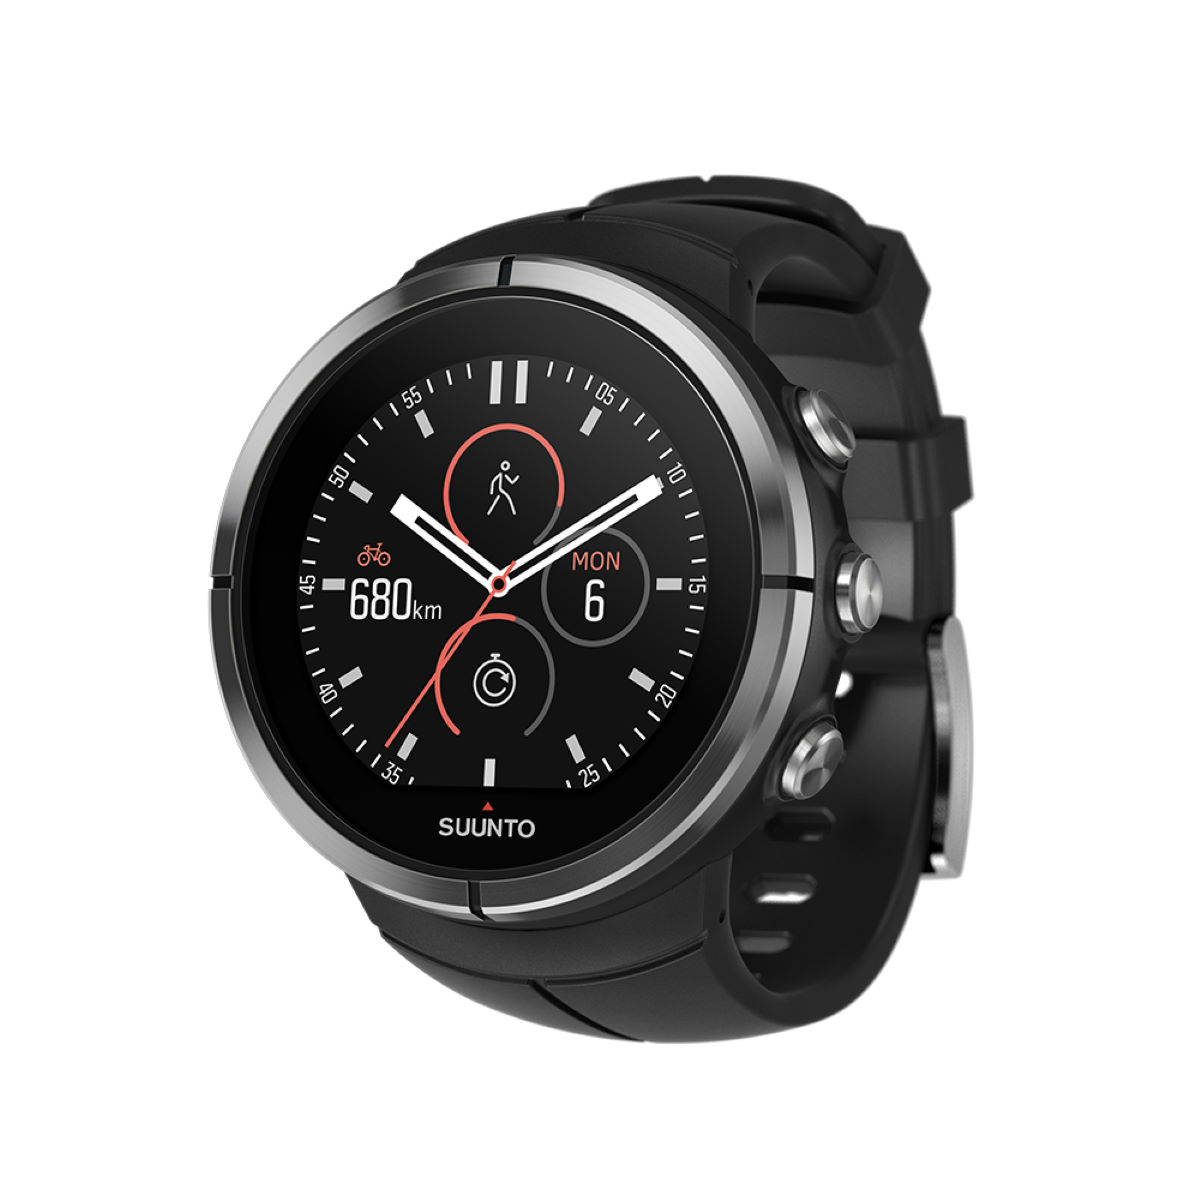 Suunto Spartan Ultra GPS Watch with HRM   GPS Running Computers